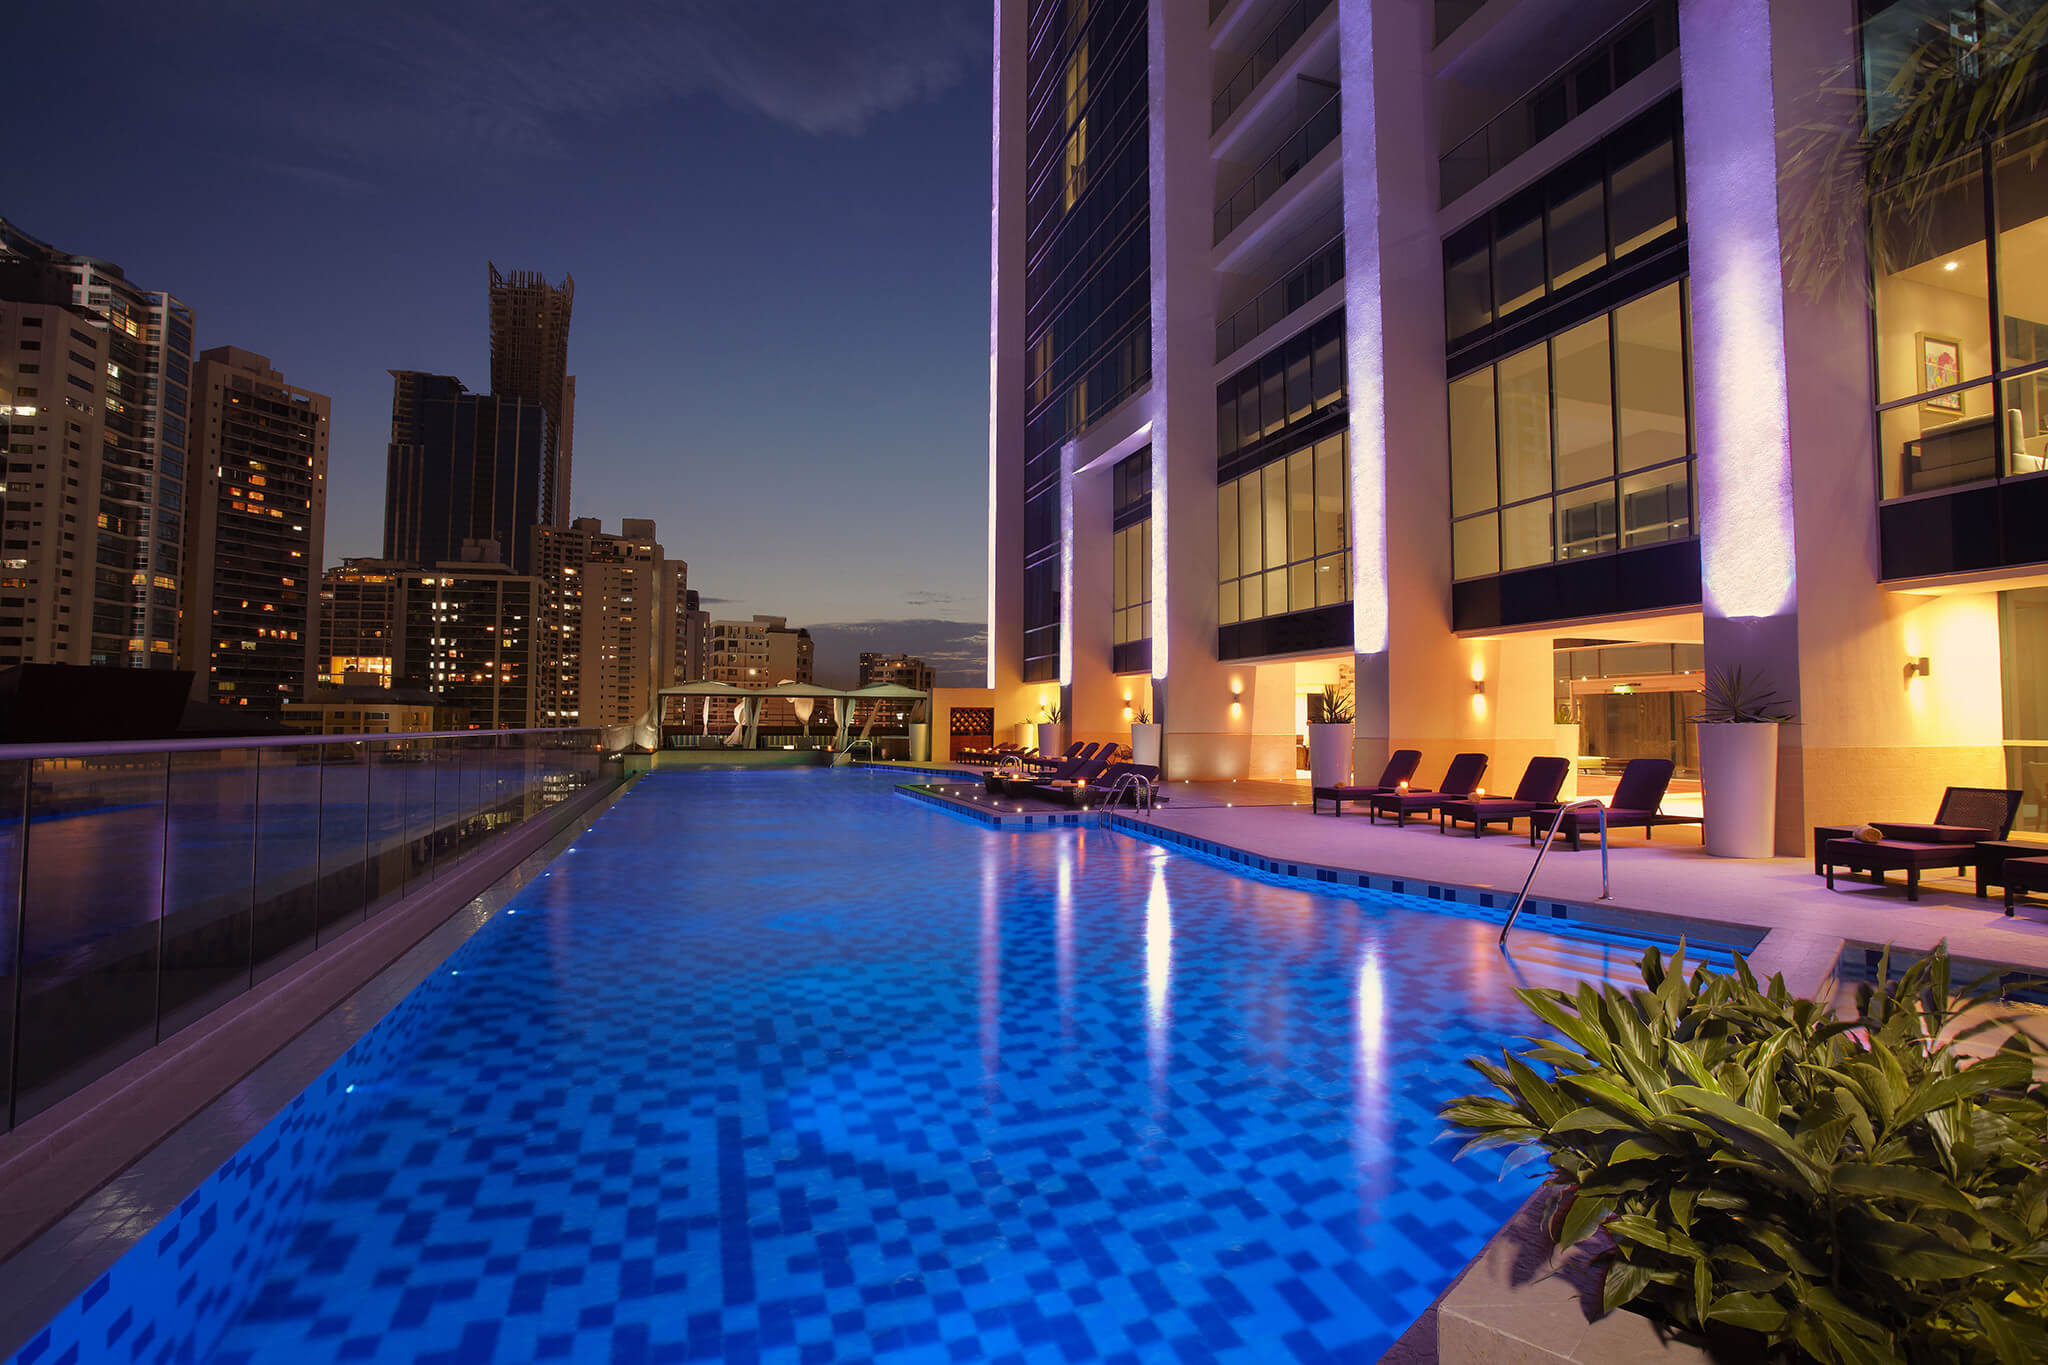 Pool at the Hard Rock Hotel in Panama